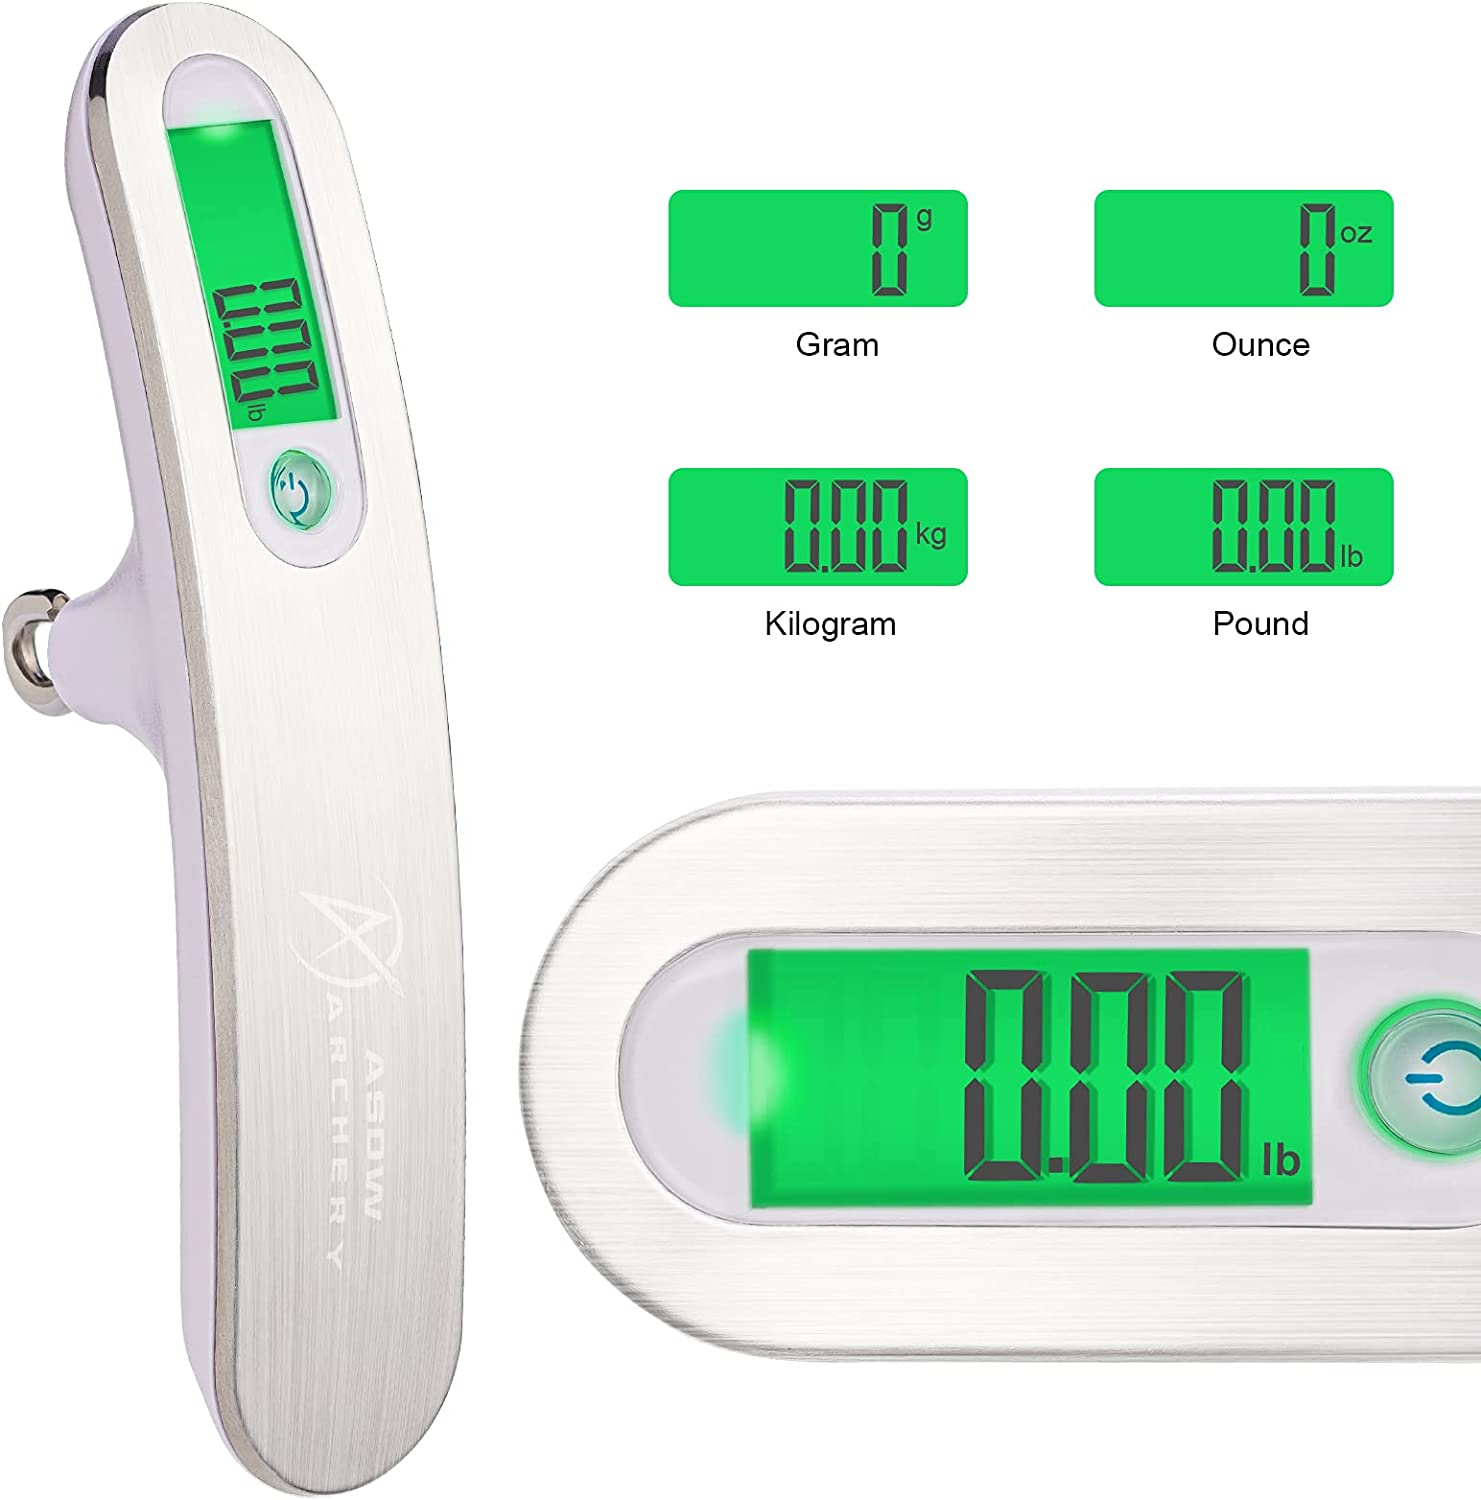 ASDW Archery Bow Scale Digital Hanging Handheld Scale for Compound Bow Recurve Bow Tune Peak Weight Hold Weight Scale 110lb 50KG LCD Display Screen g/oz/kg/lb : Sports & Outdoors